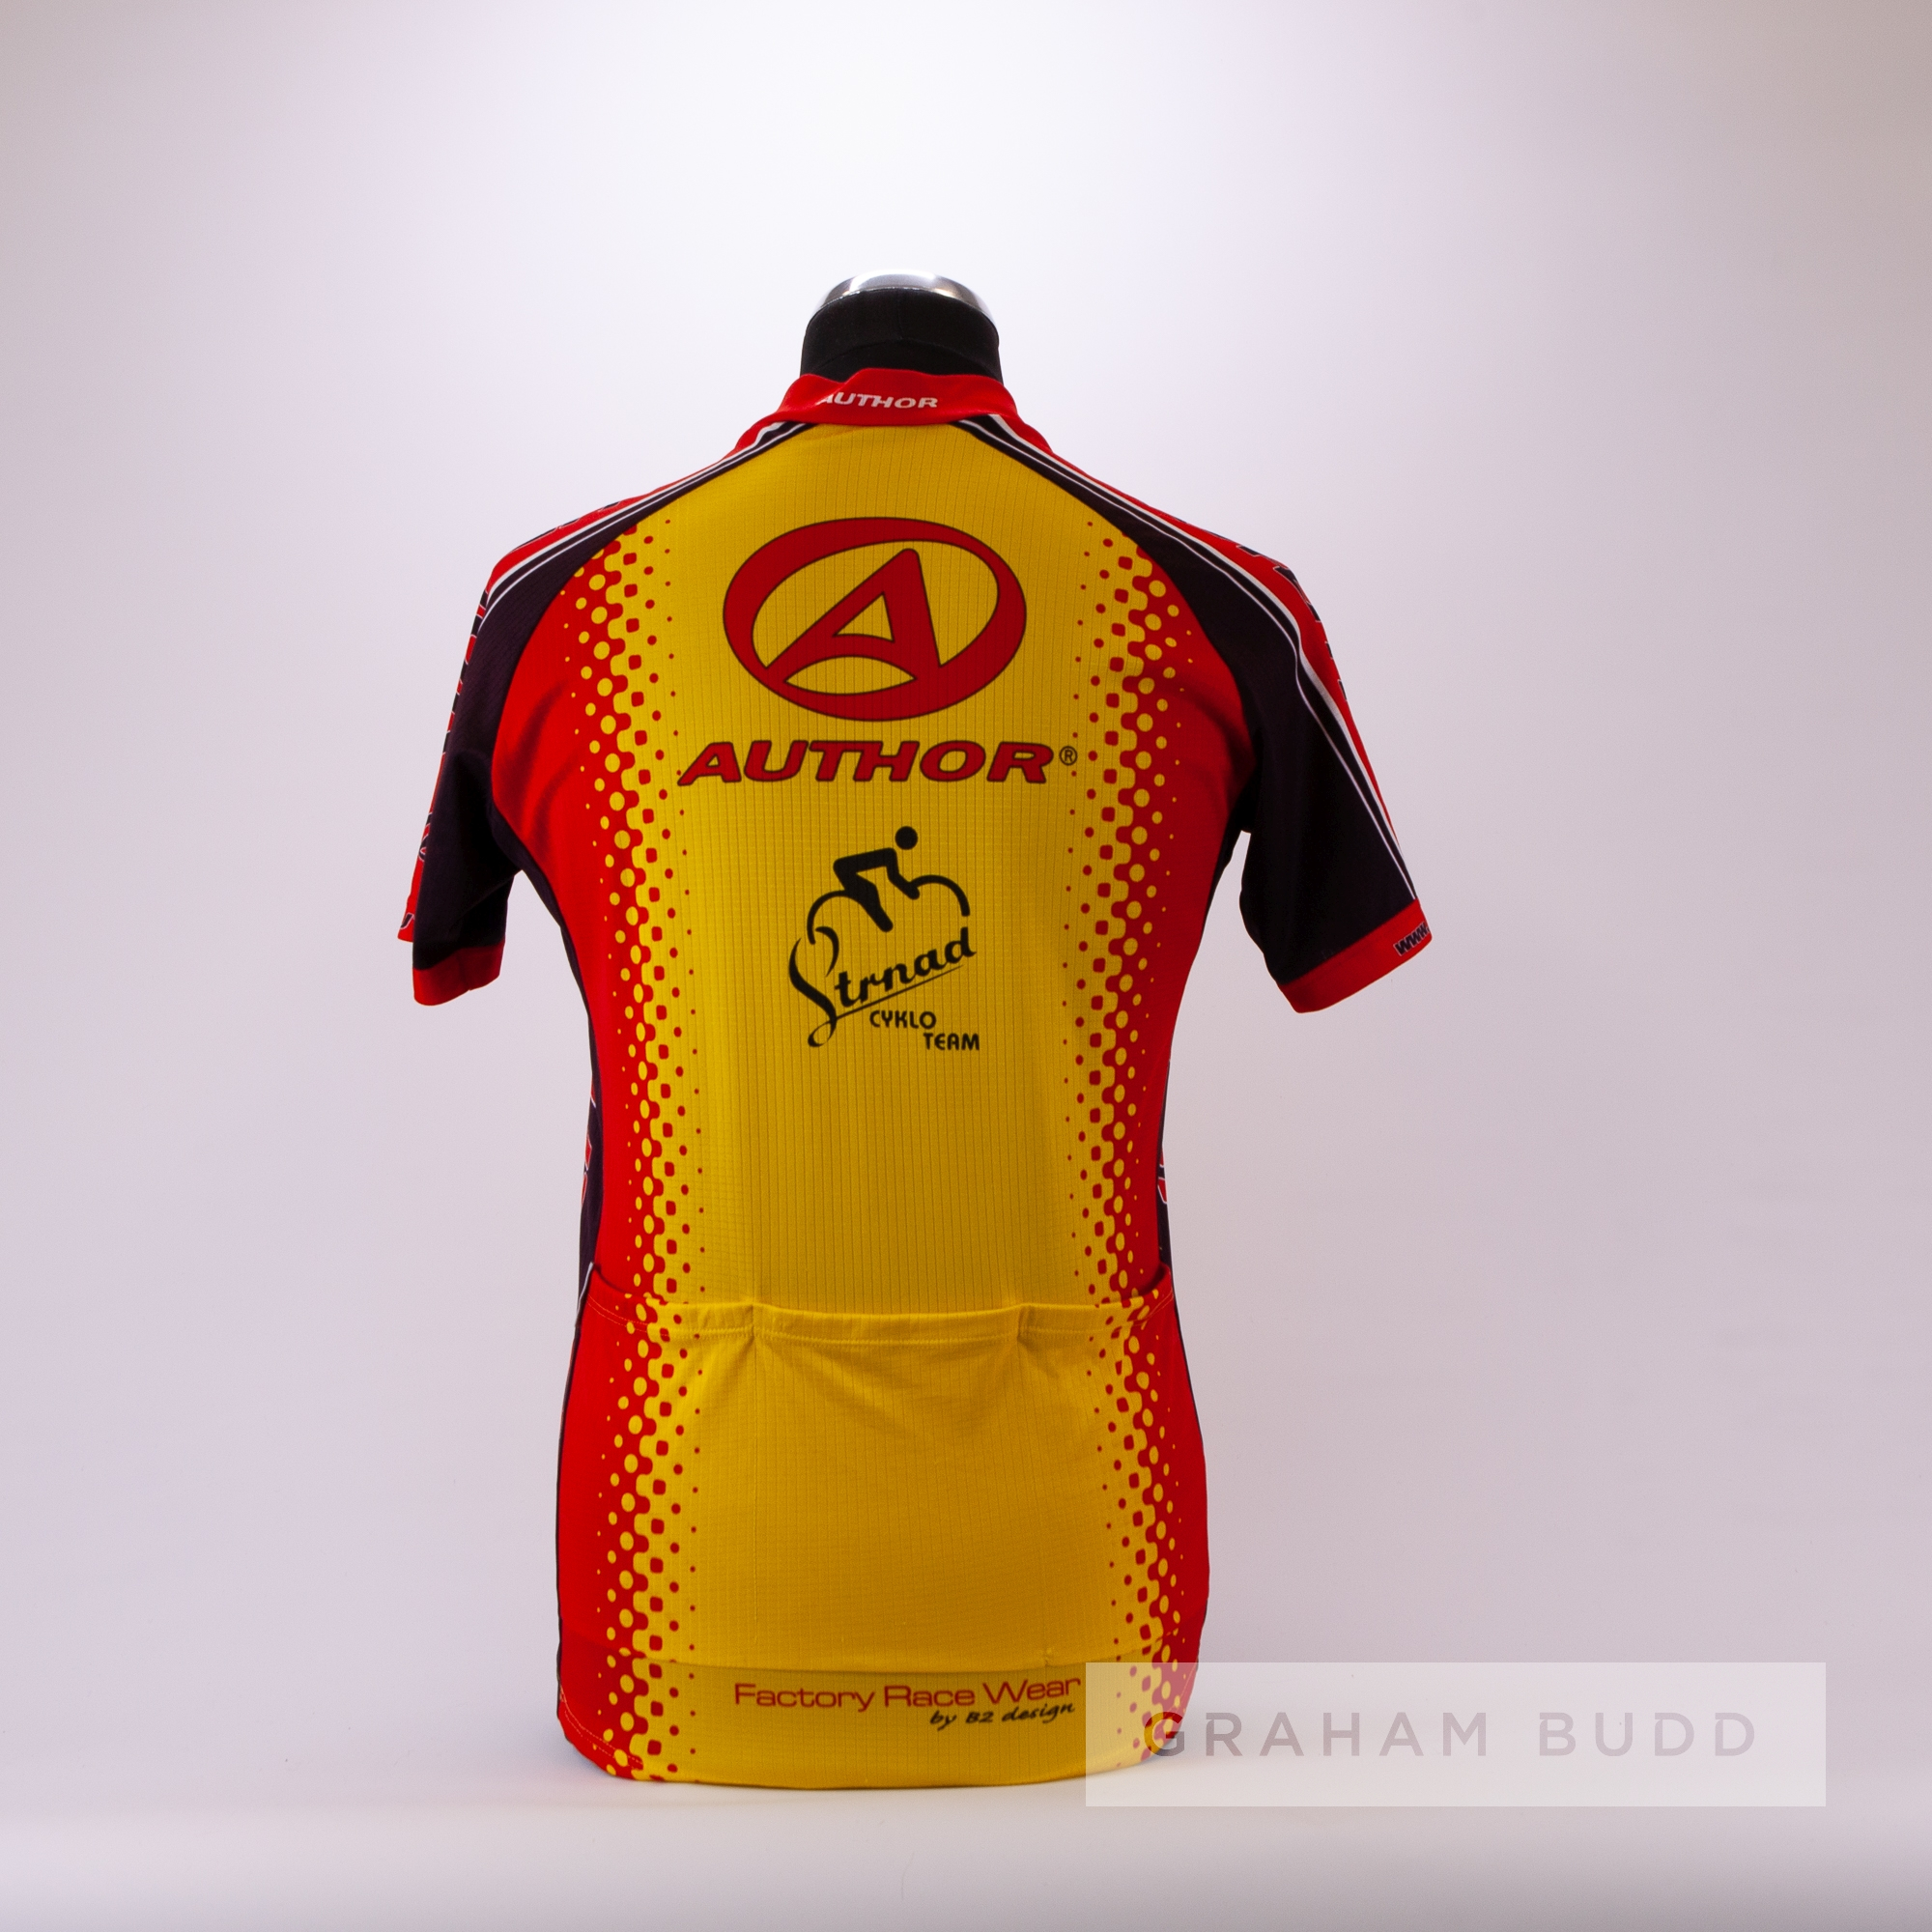 2008 yellow, red and black Czech Elkov Kasper Author Cycles Cycling race jersey, scarce, polyester - Image 4 of 4